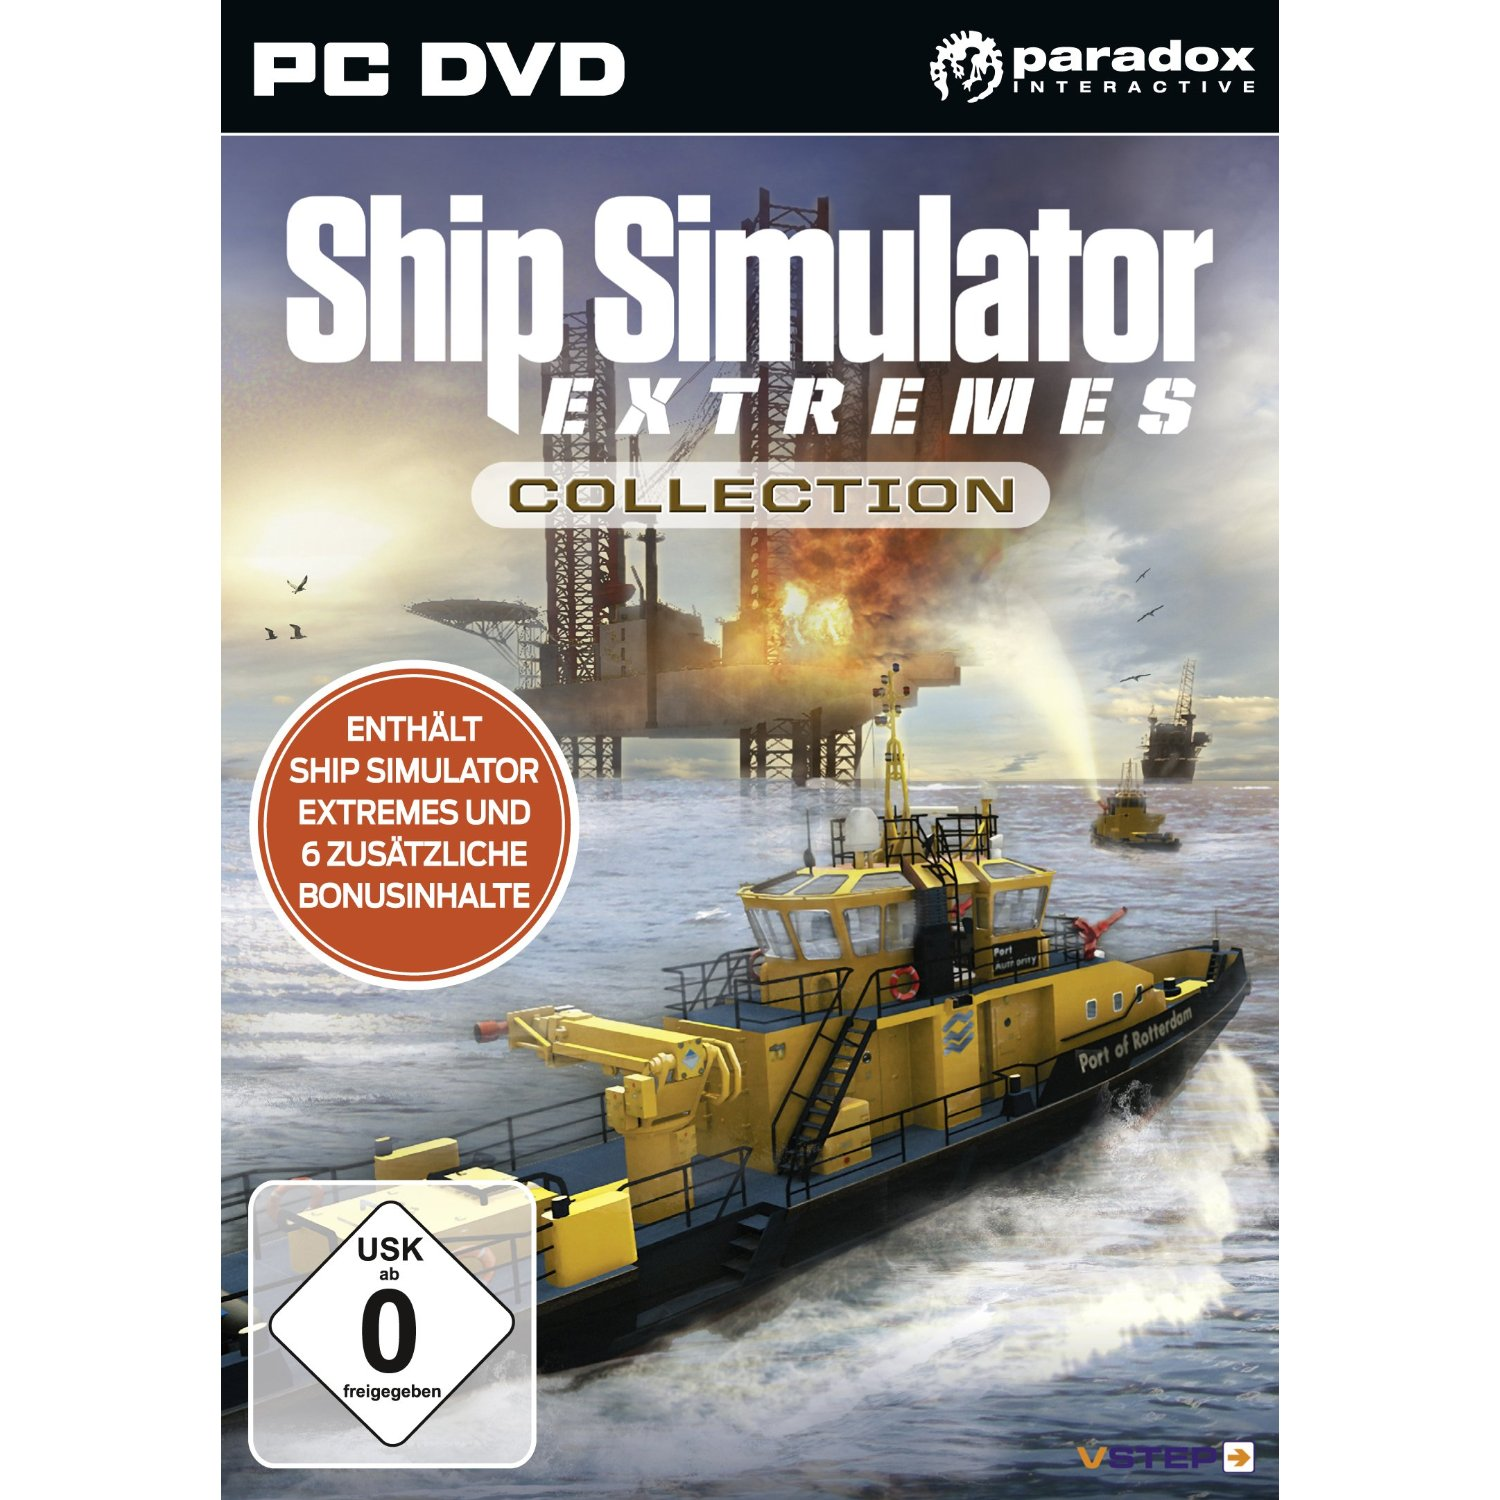 Dvd Sammlung Kaufen Ship Simulator Extremes Collection Pc 2012 Dvd Box